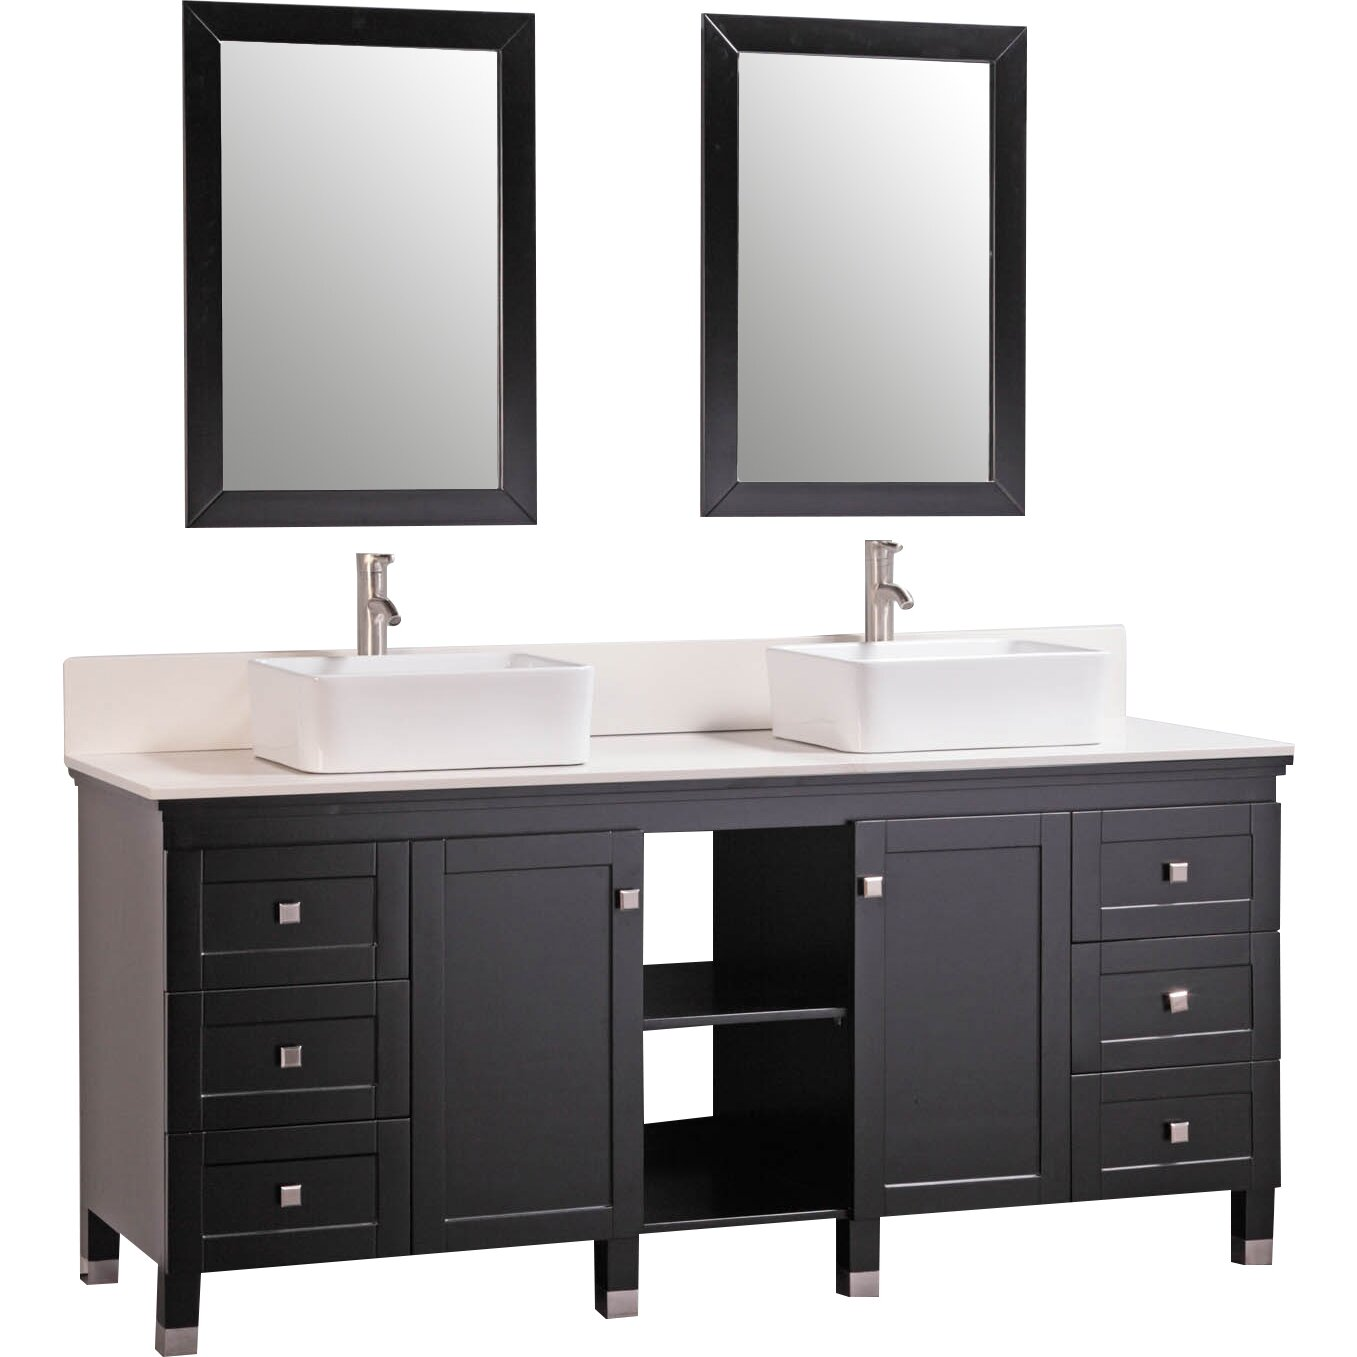 72 Quot Double Solid Wood Bathroom Vanity Set With Mirrors